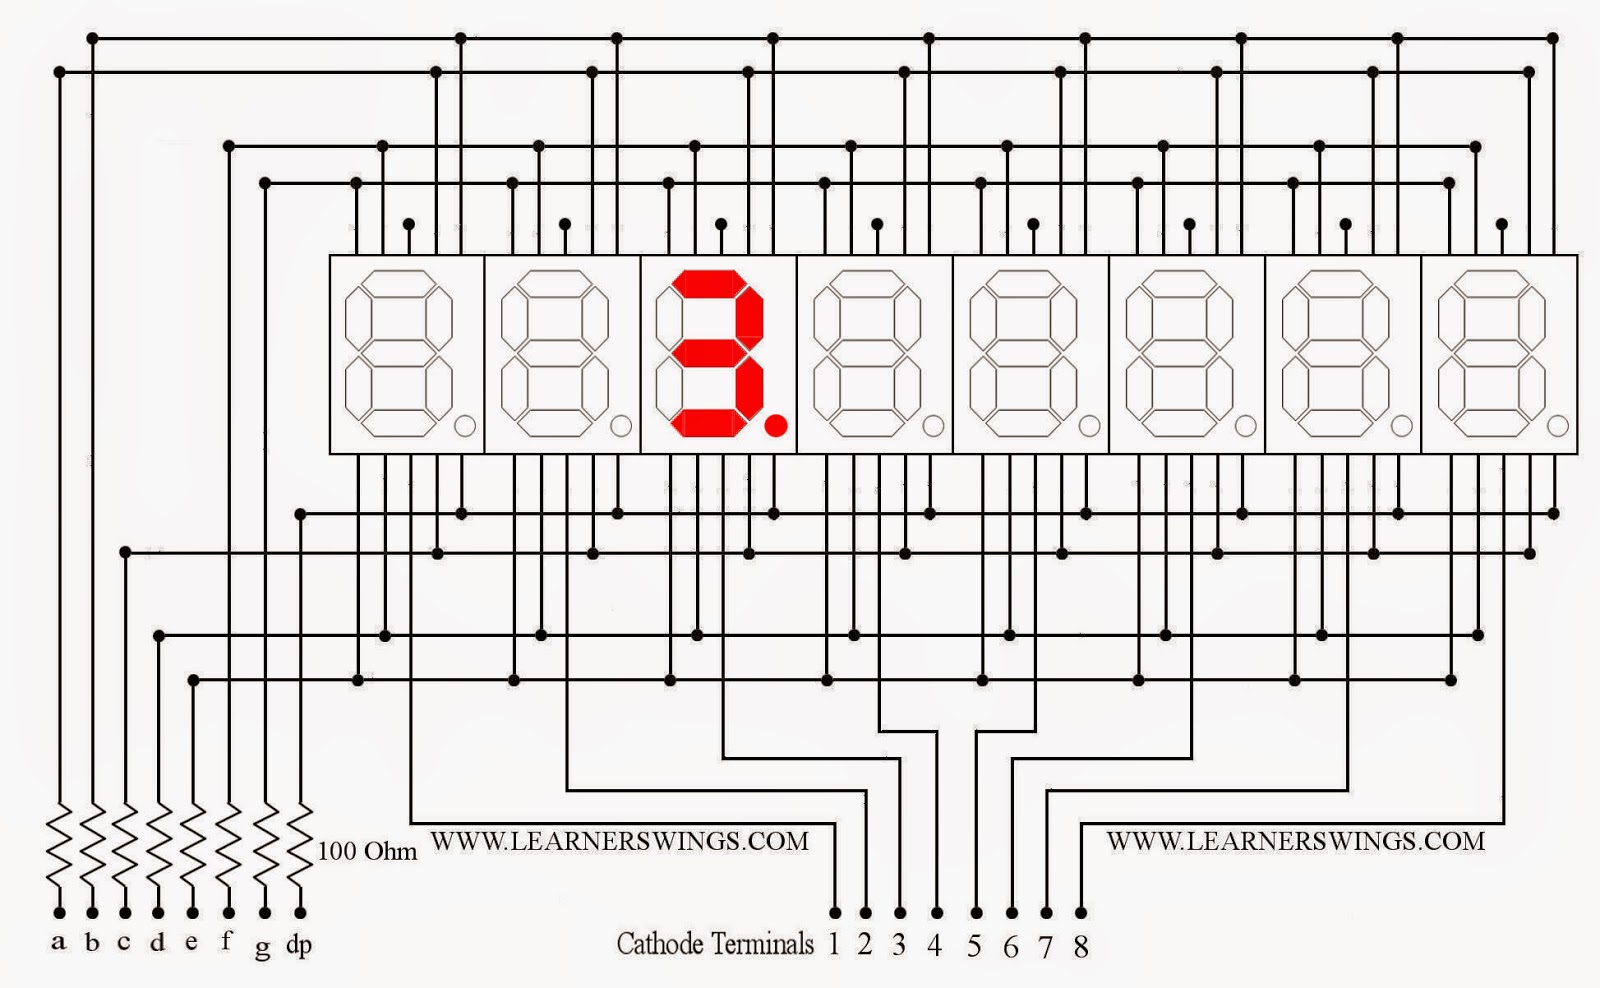 How To Display 3 In The 3rd Seven Segment Display Using Arduino Mega Part 5 Of 16 Funny